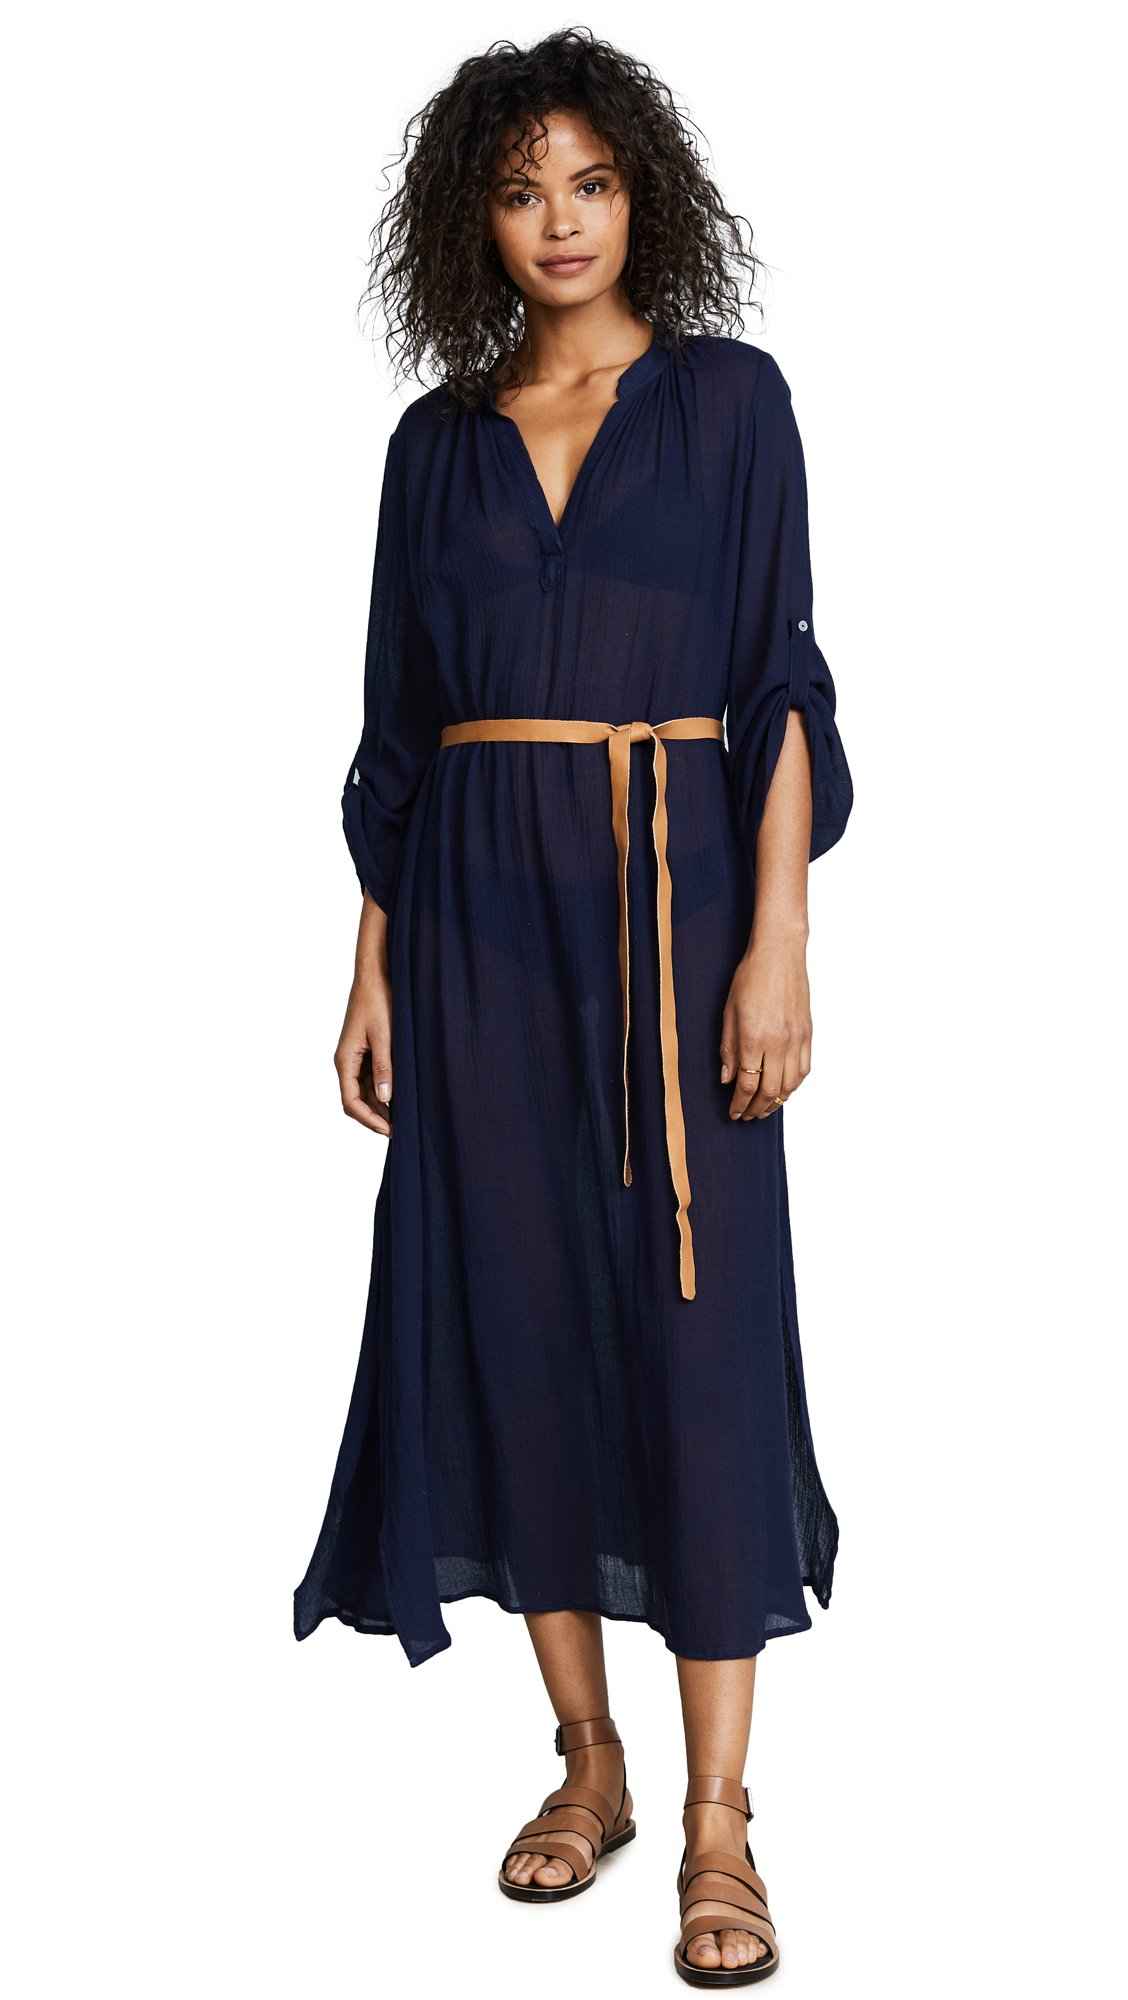 Eberjey Women's Summer Of Love Cover Up Dress, Deep Blue, M/L